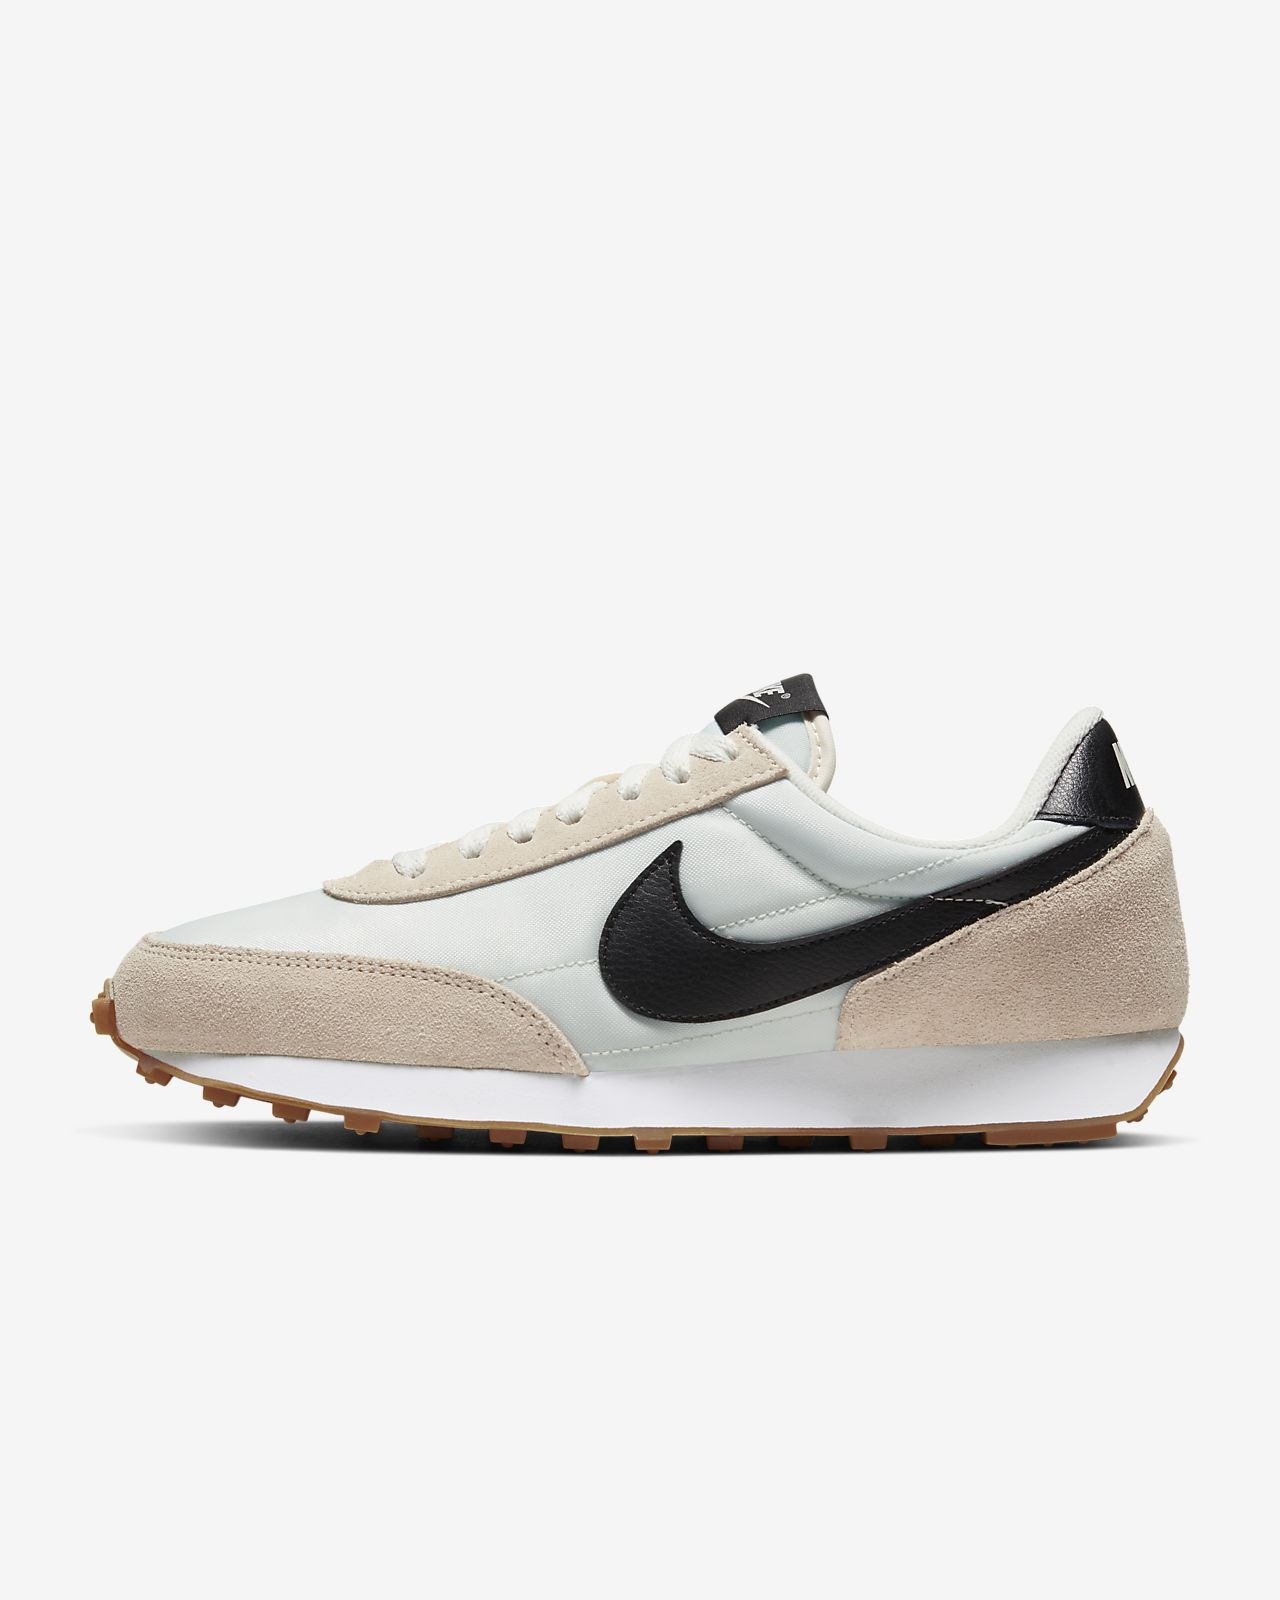 Nike Shoes on | Nike free shoes, Casual shoes, Beige sneakers